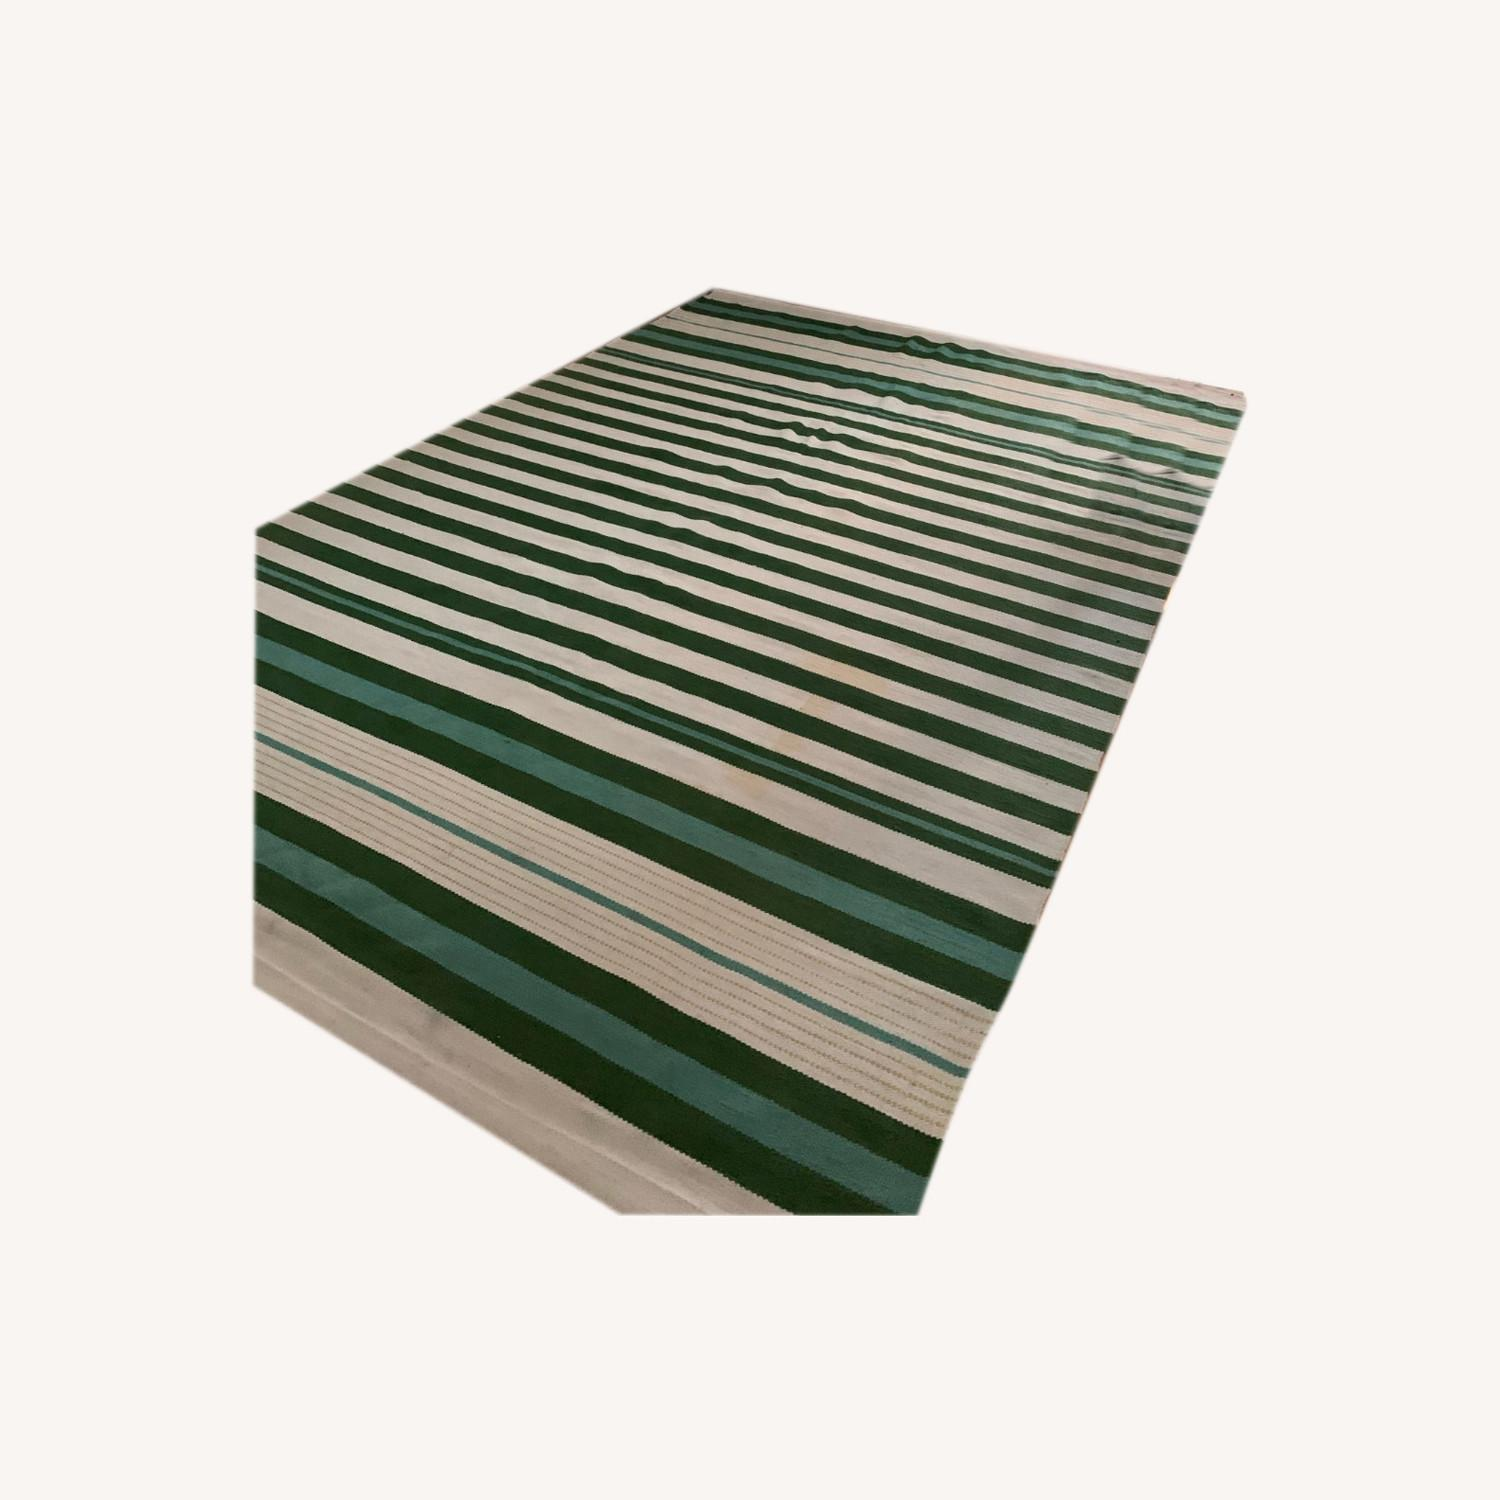 Target Teal Green Striped Woven Rug 7 x 10 - image-4